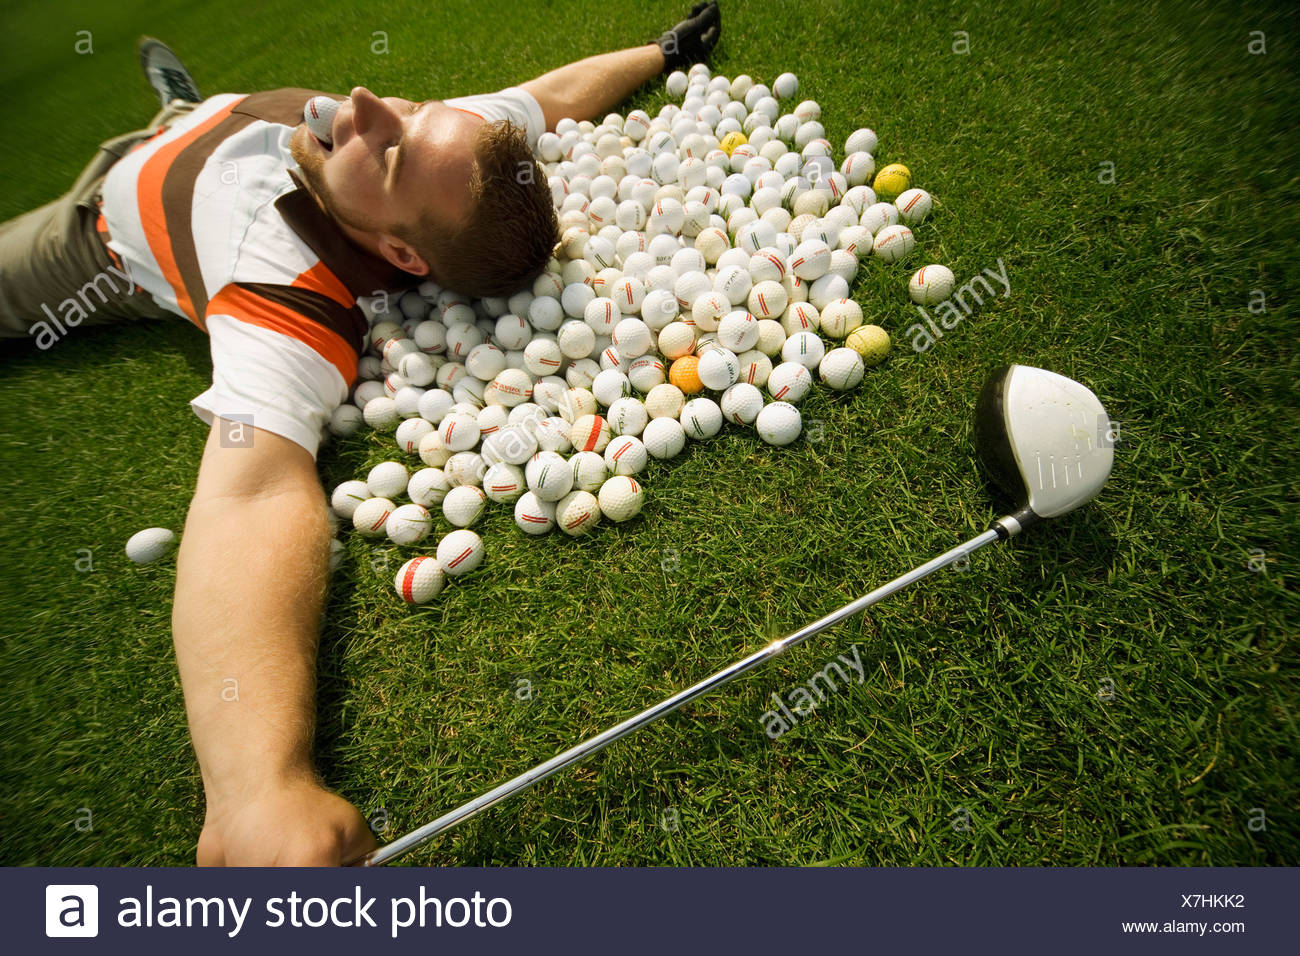 A man lying on golf balls - Stock Image